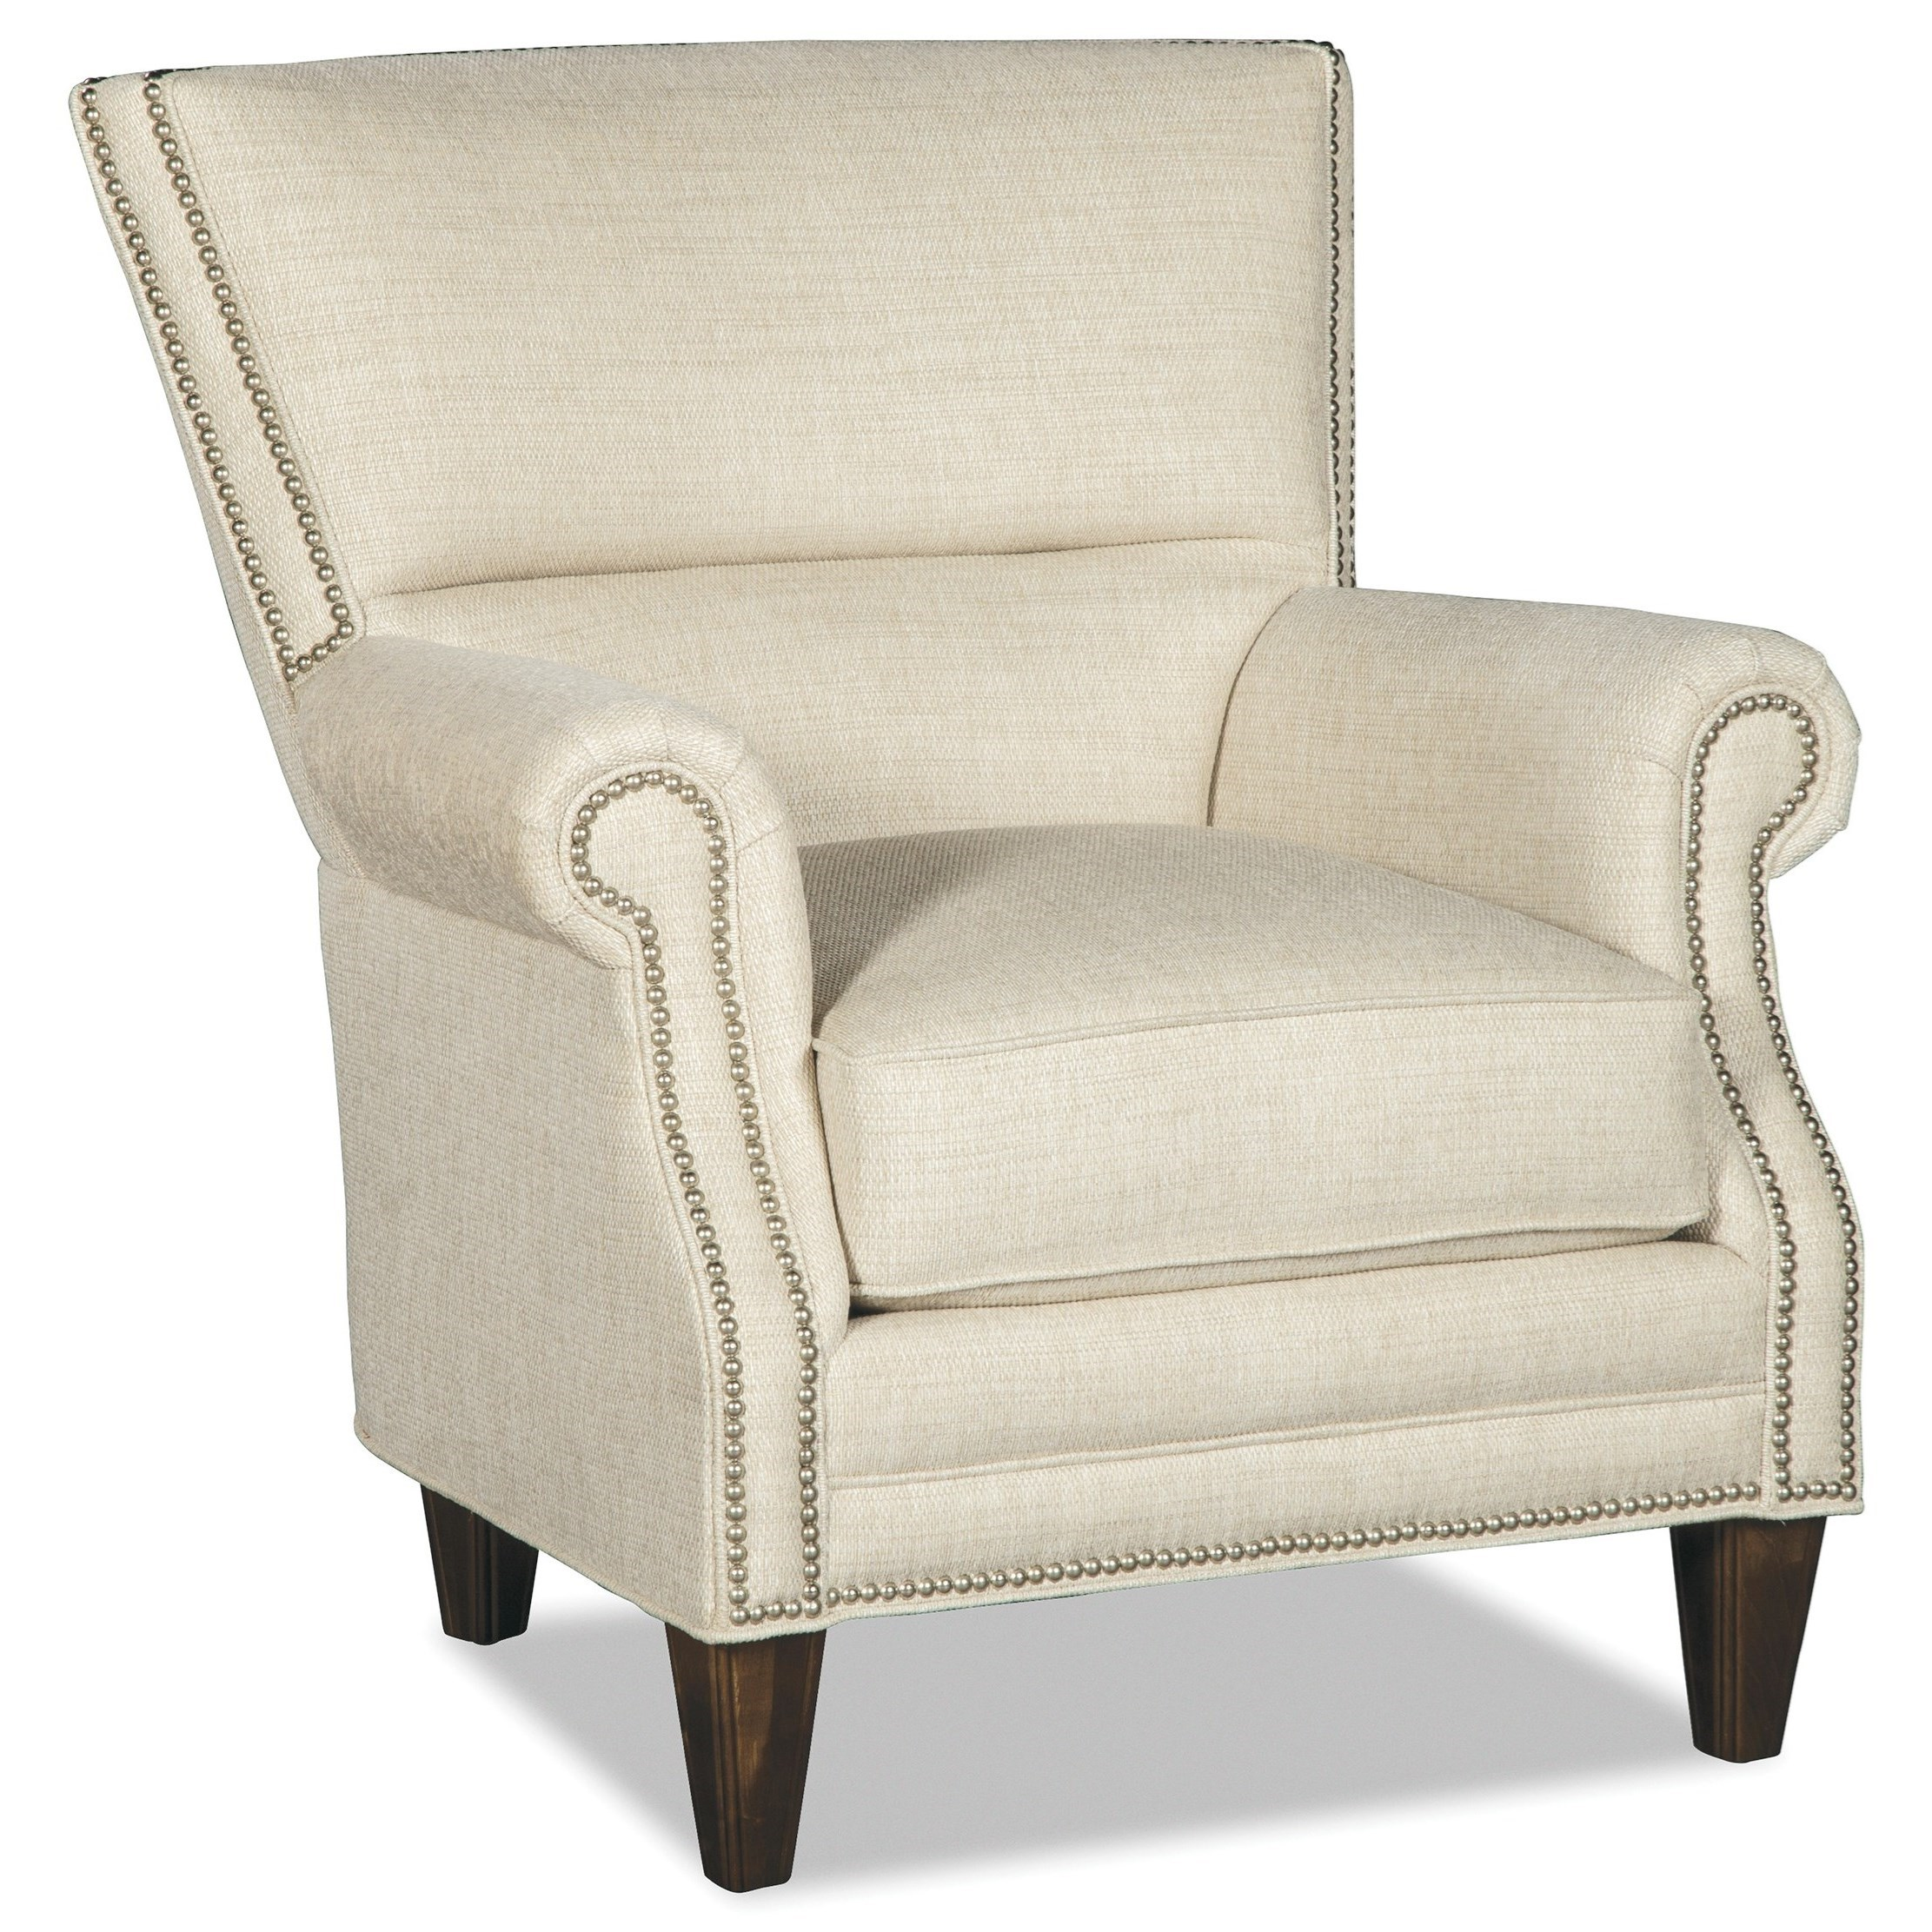 006210 Chair by Craftmaster at Lindy's Furniture Company